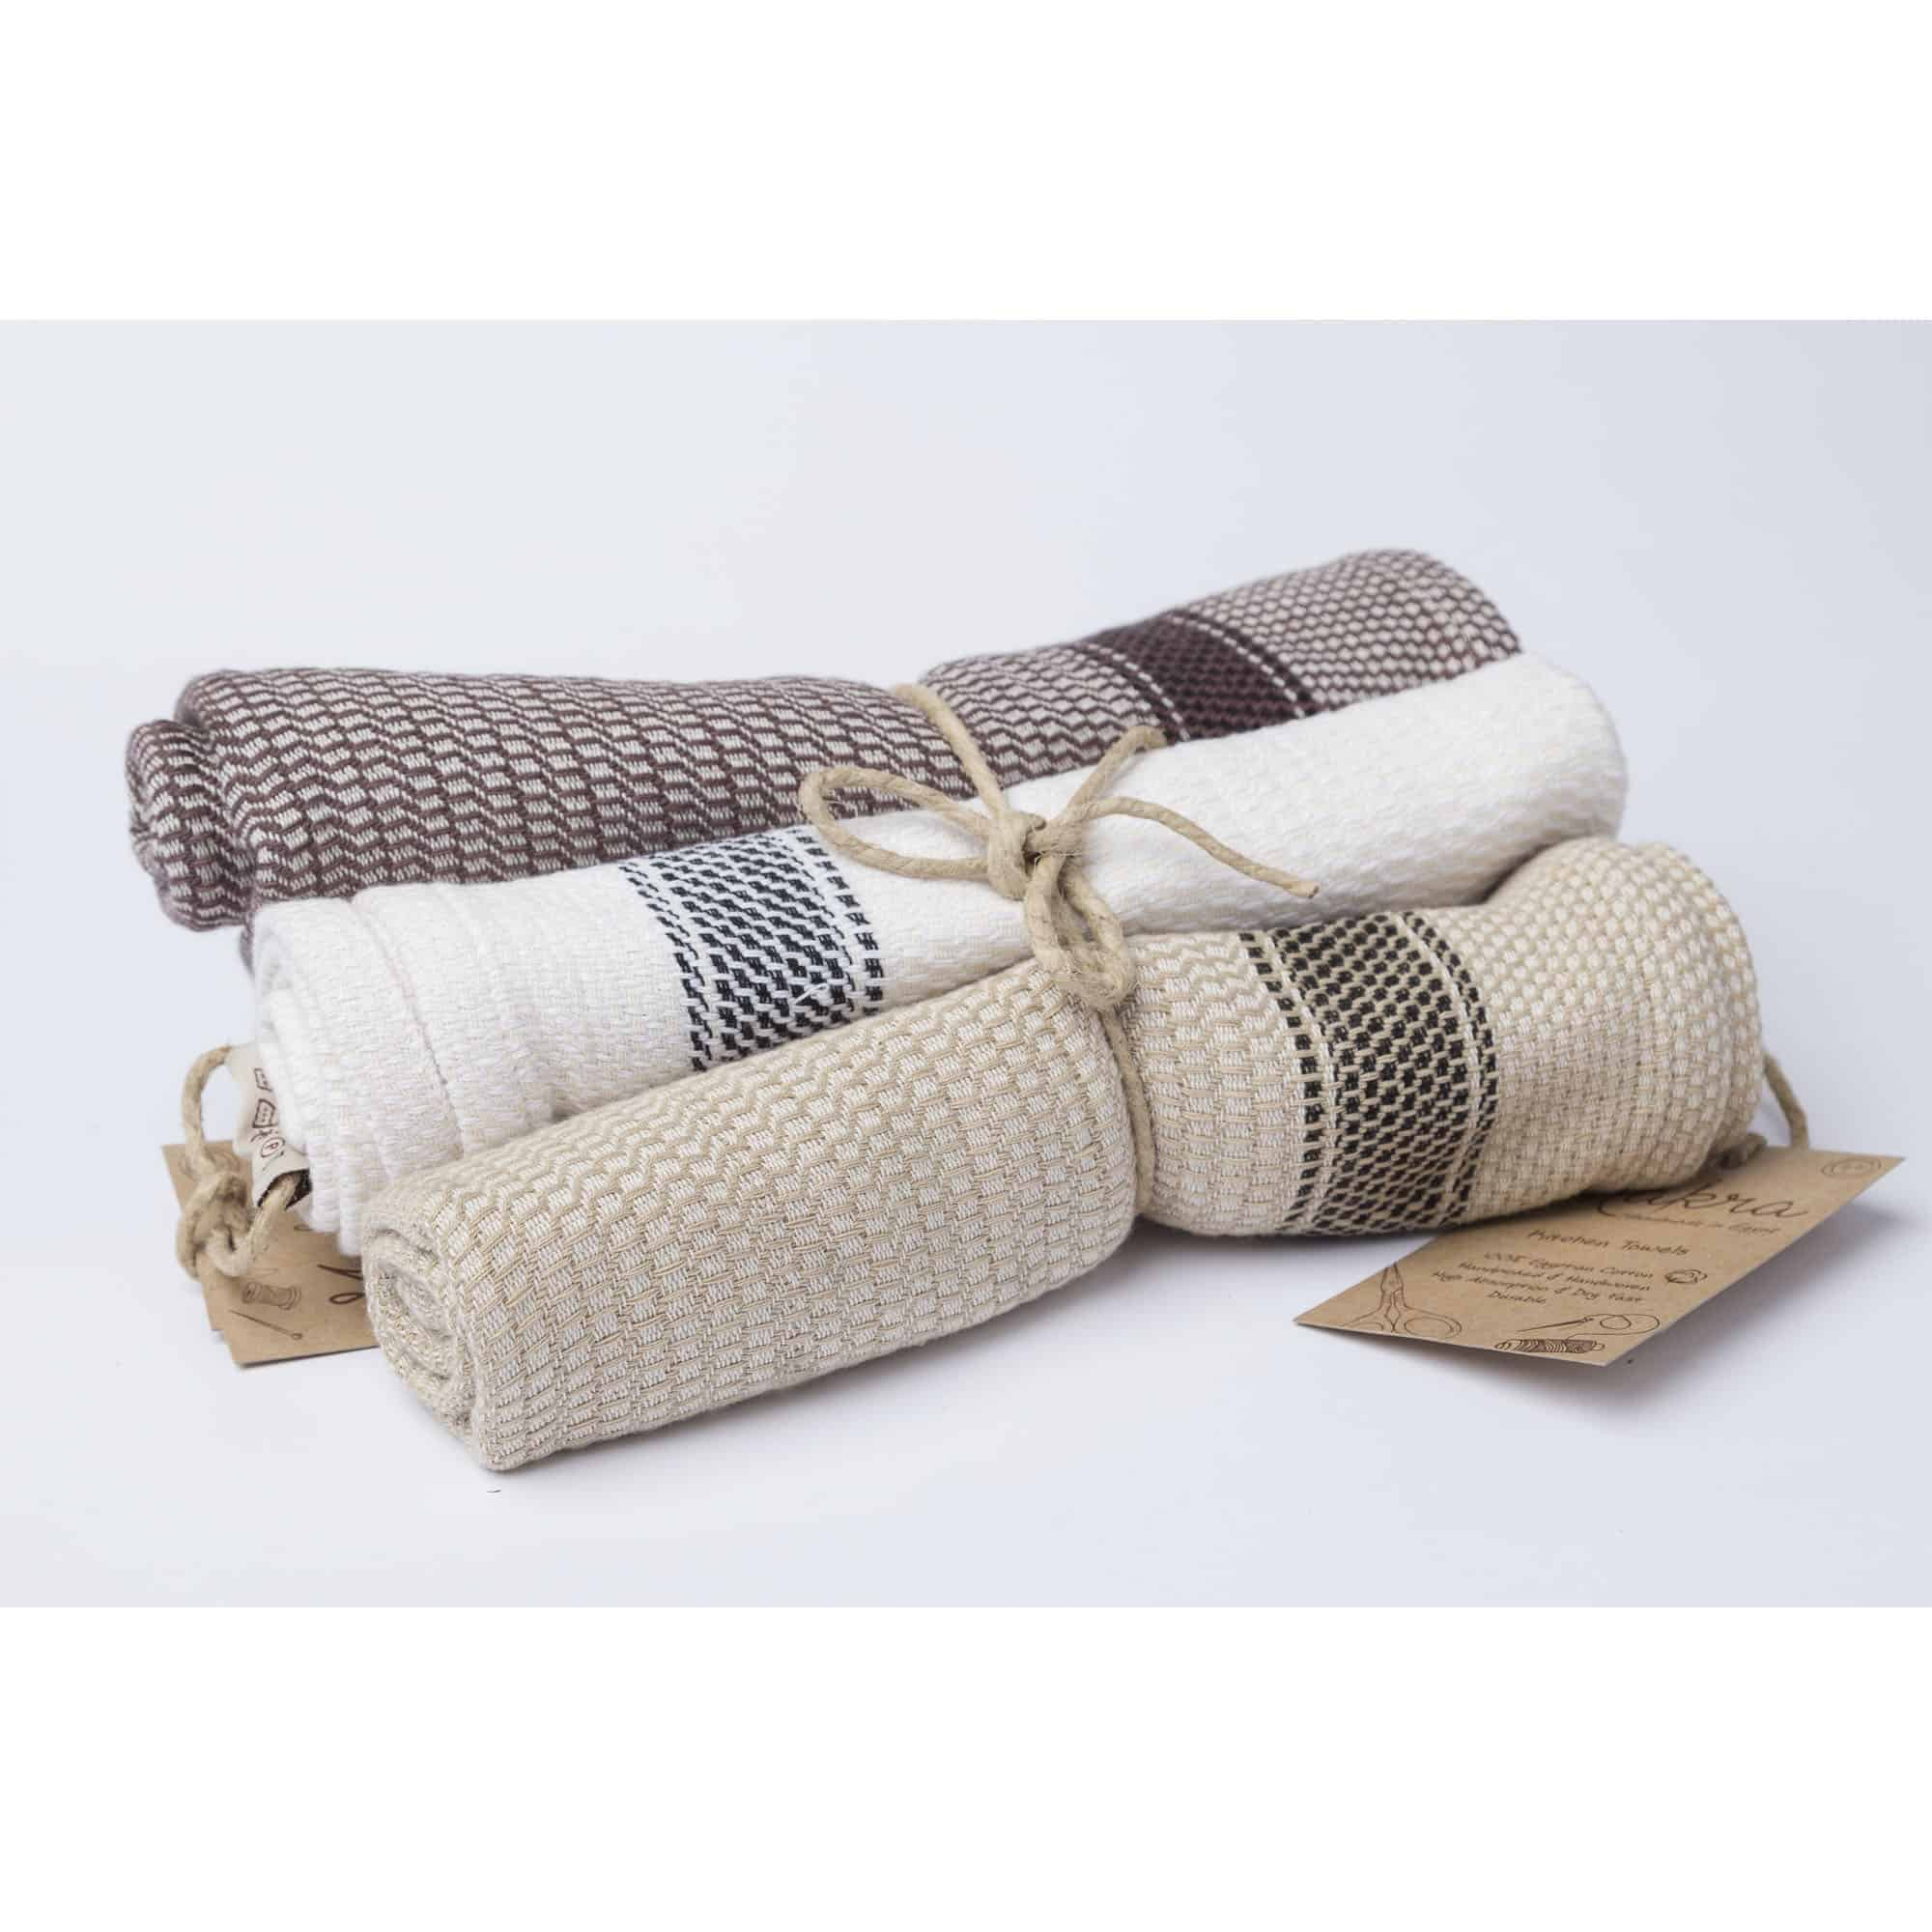 Set of 3 Tea and Kitchen Towels - Handwoven Egyptian Cotton